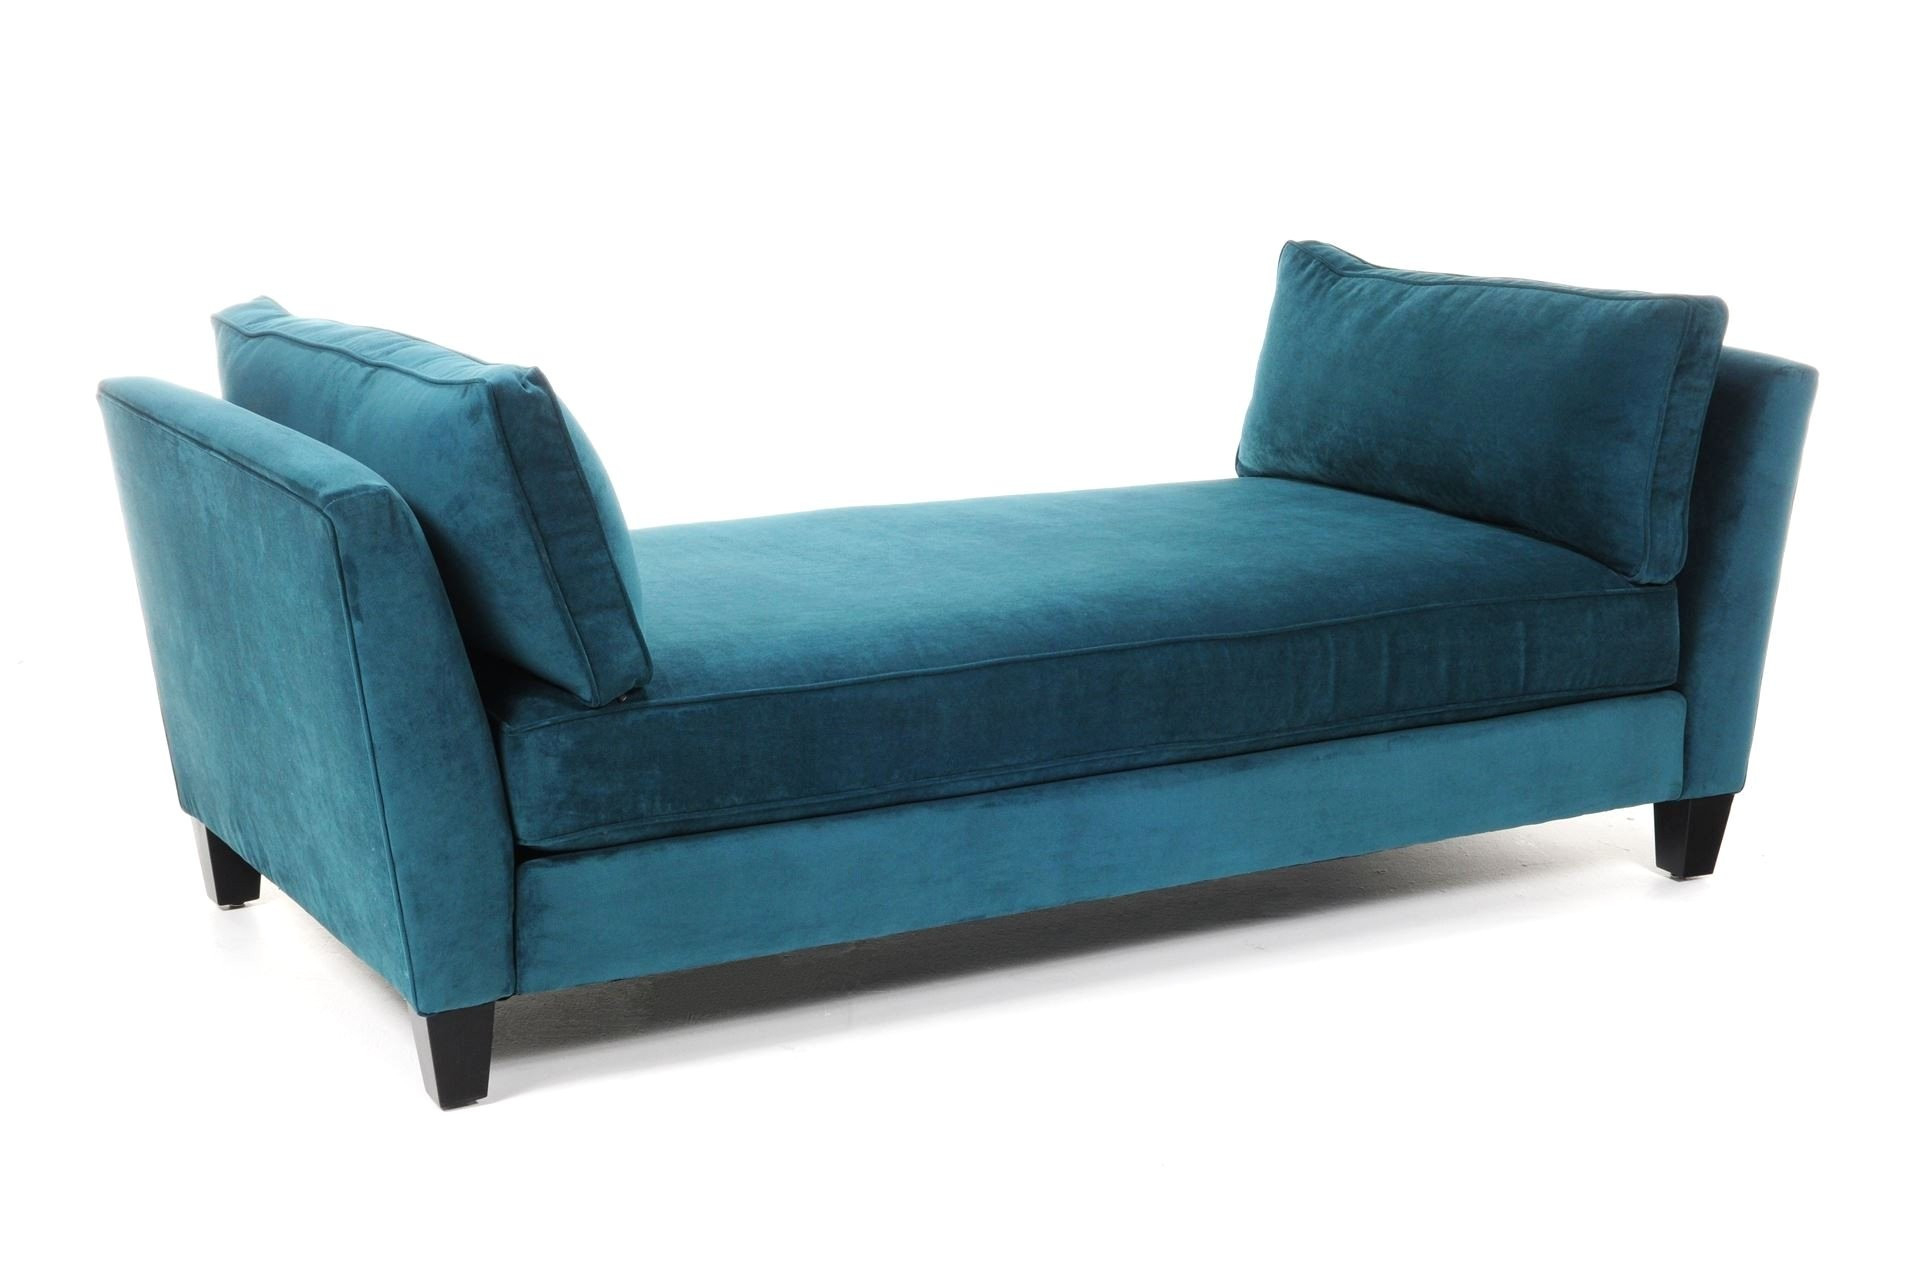 Unique Chaise Lounge Chairs 5